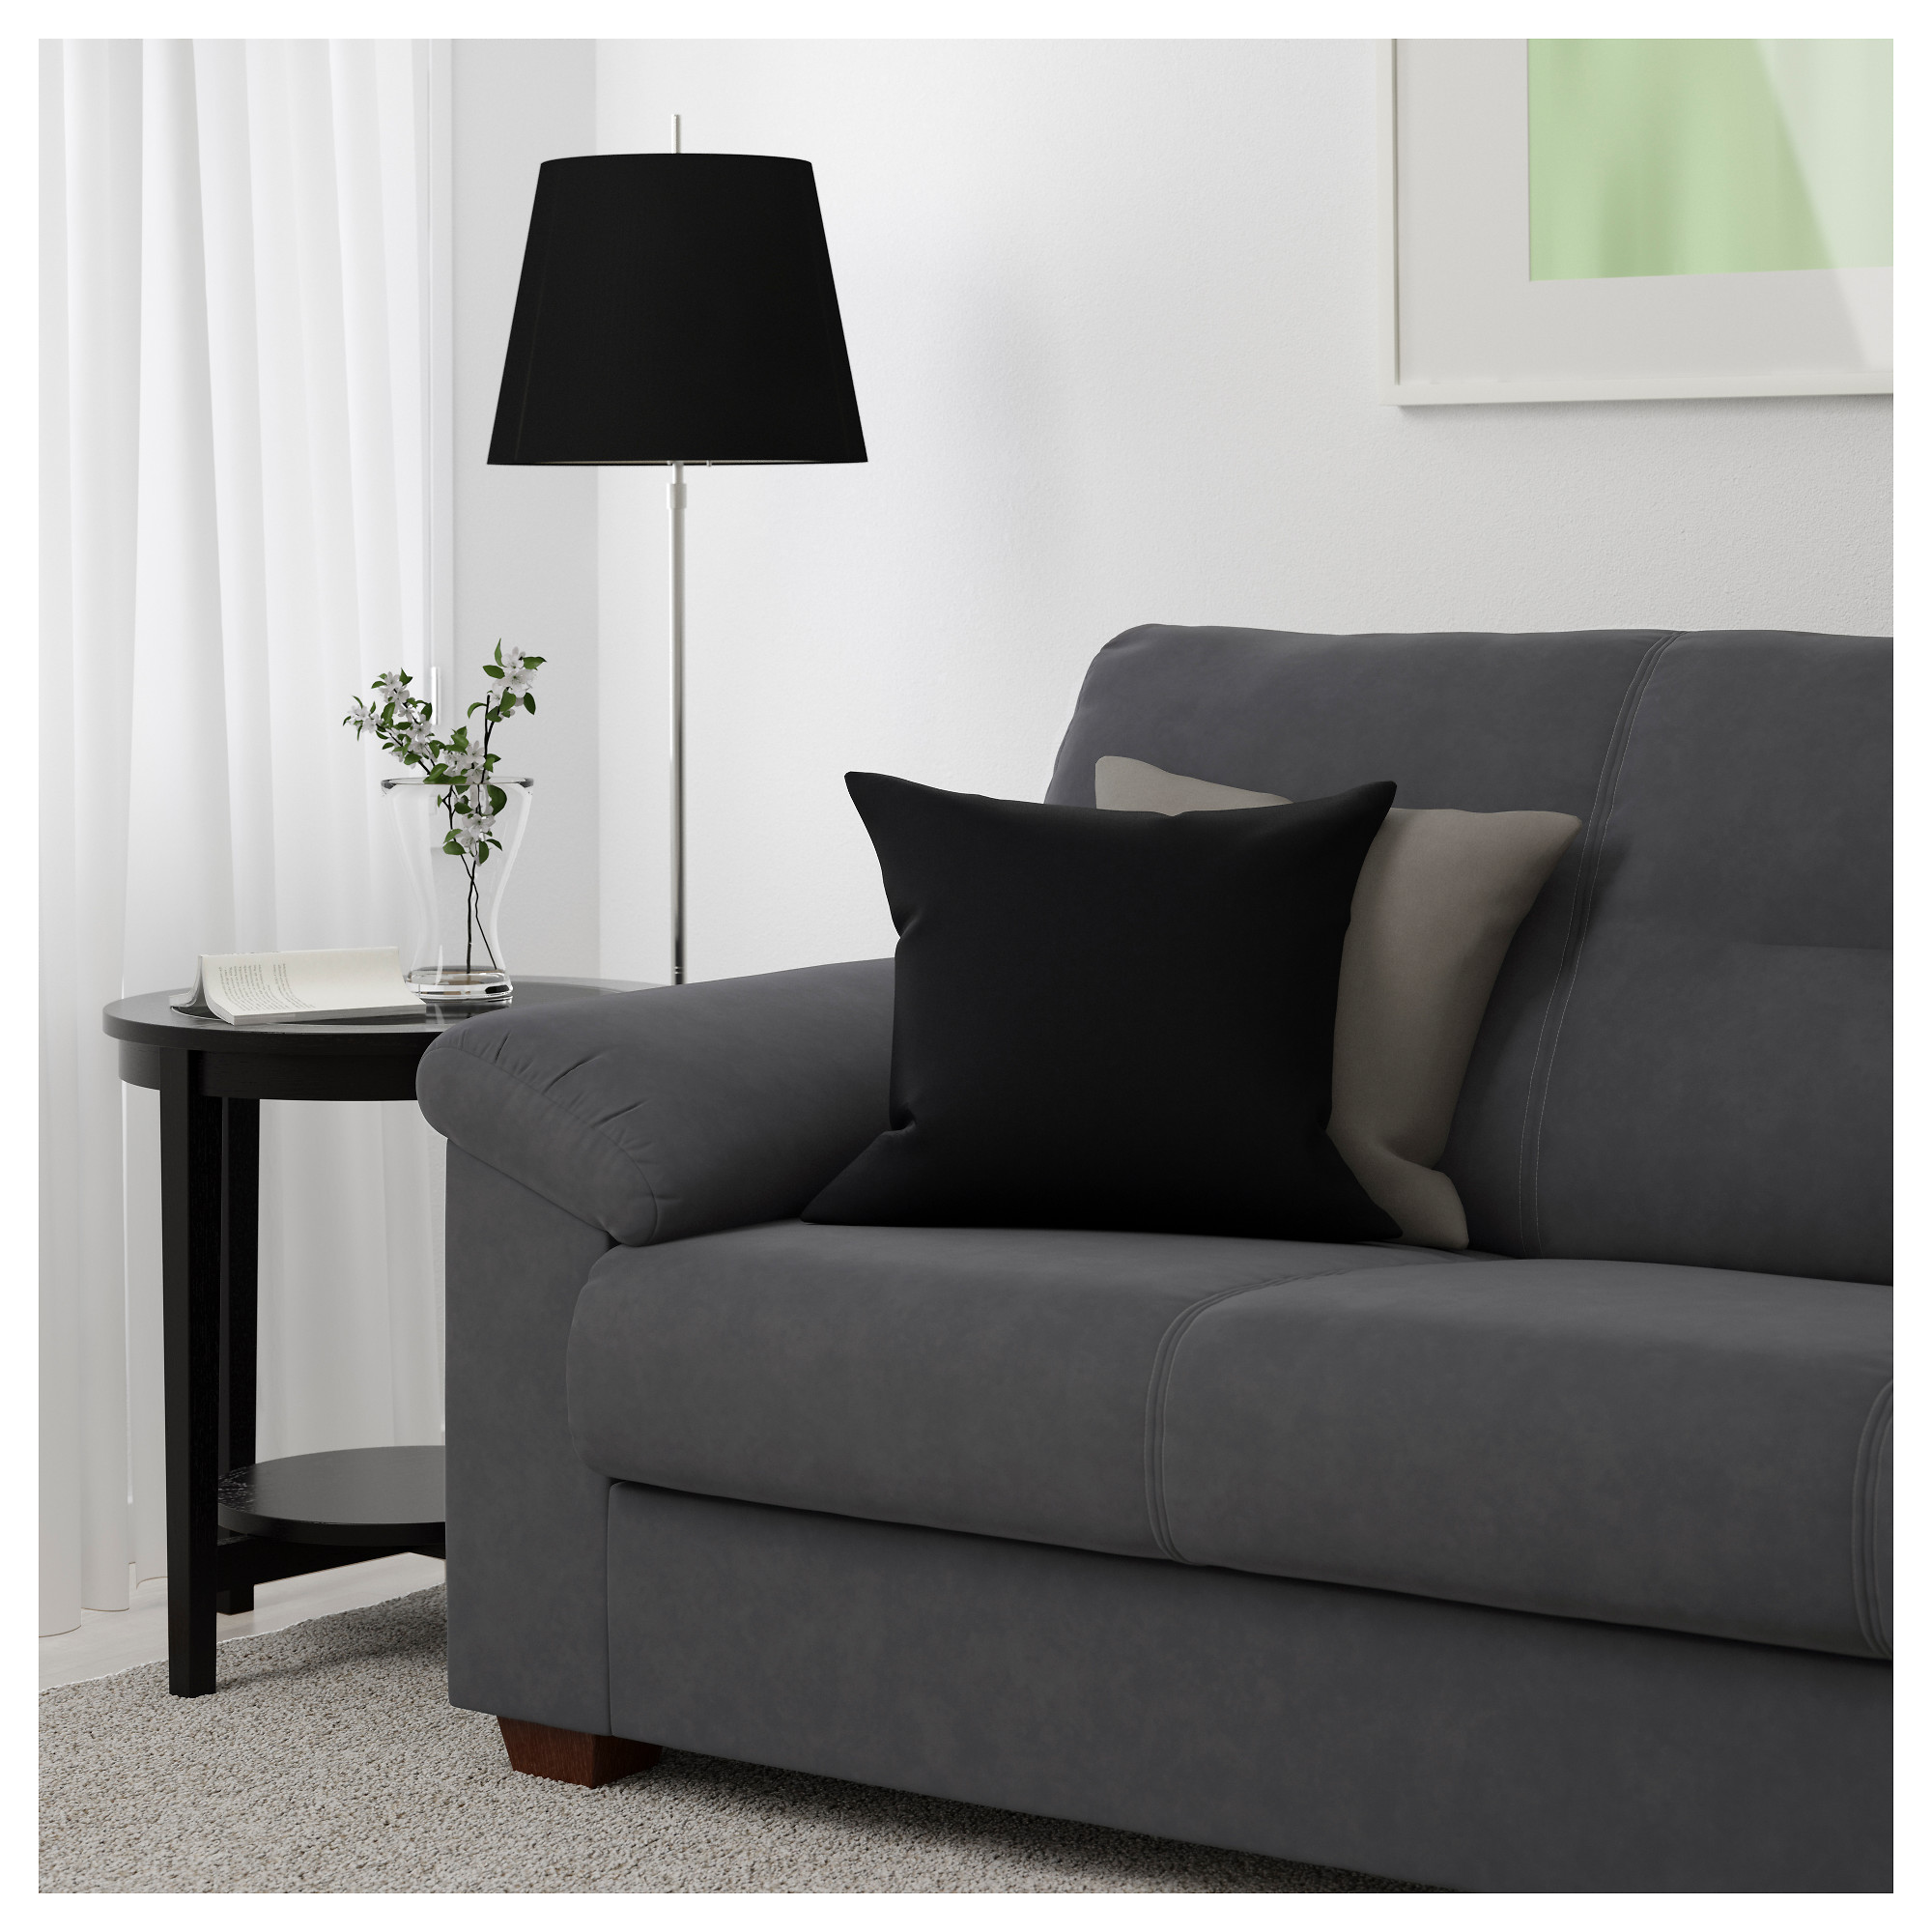 ikea gray sofa knislinge sofa samsta dark gray ikea thesofa. Black Bedroom Furniture Sets. Home Design Ideas